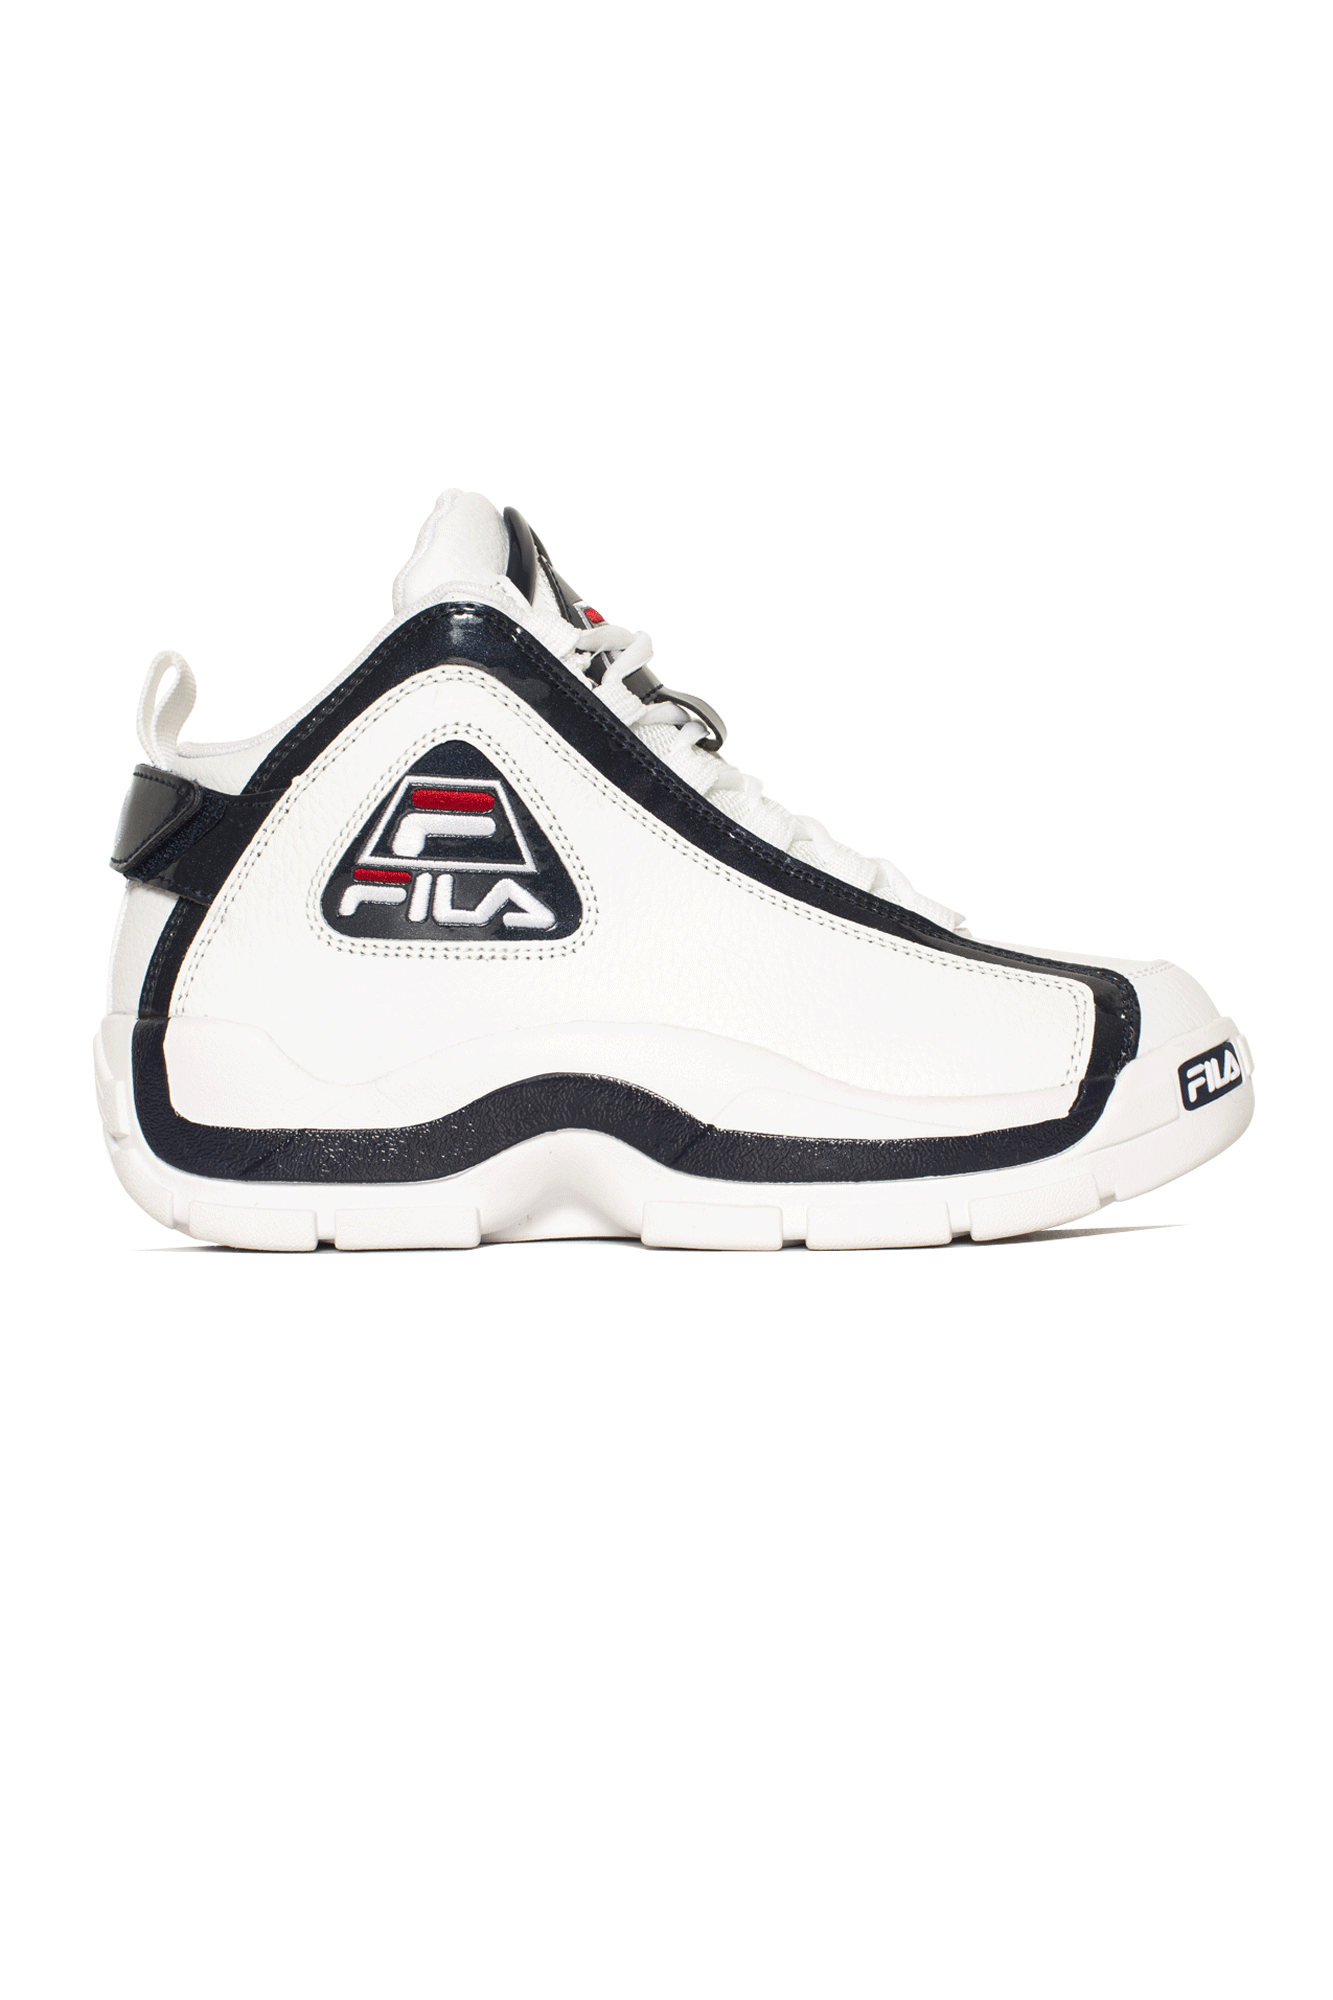 Fila Sneakers Grant Hill 2 White 1010788#H1US#01M#7,5 - One Block Down